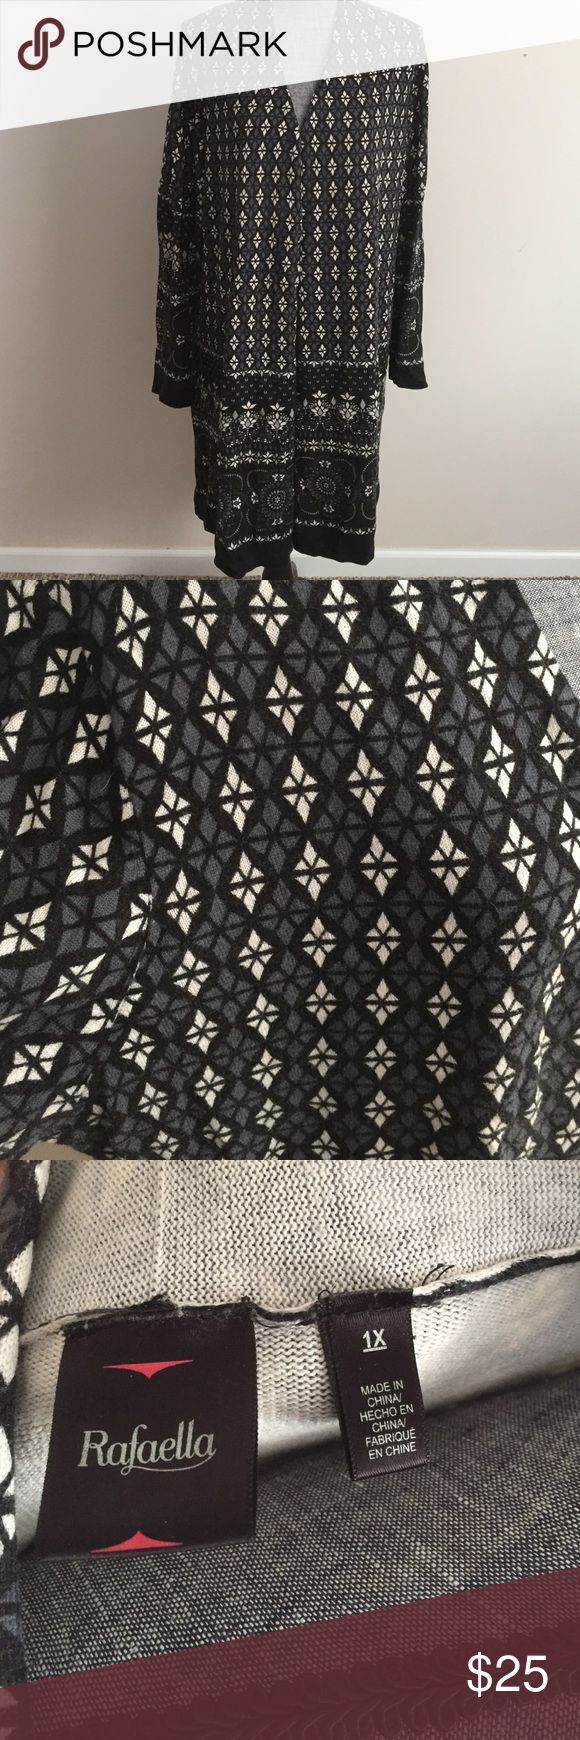 """Black and white cardigan Length 40"""" from shoulder to bottom hem.  Beautiful black and white patterned cardigan. There is some dye discoloration on the inside of the cardigan, and was purchased that way and is not seen, I just wanted to disclose. Rafaella Sweaters Cardigans"""